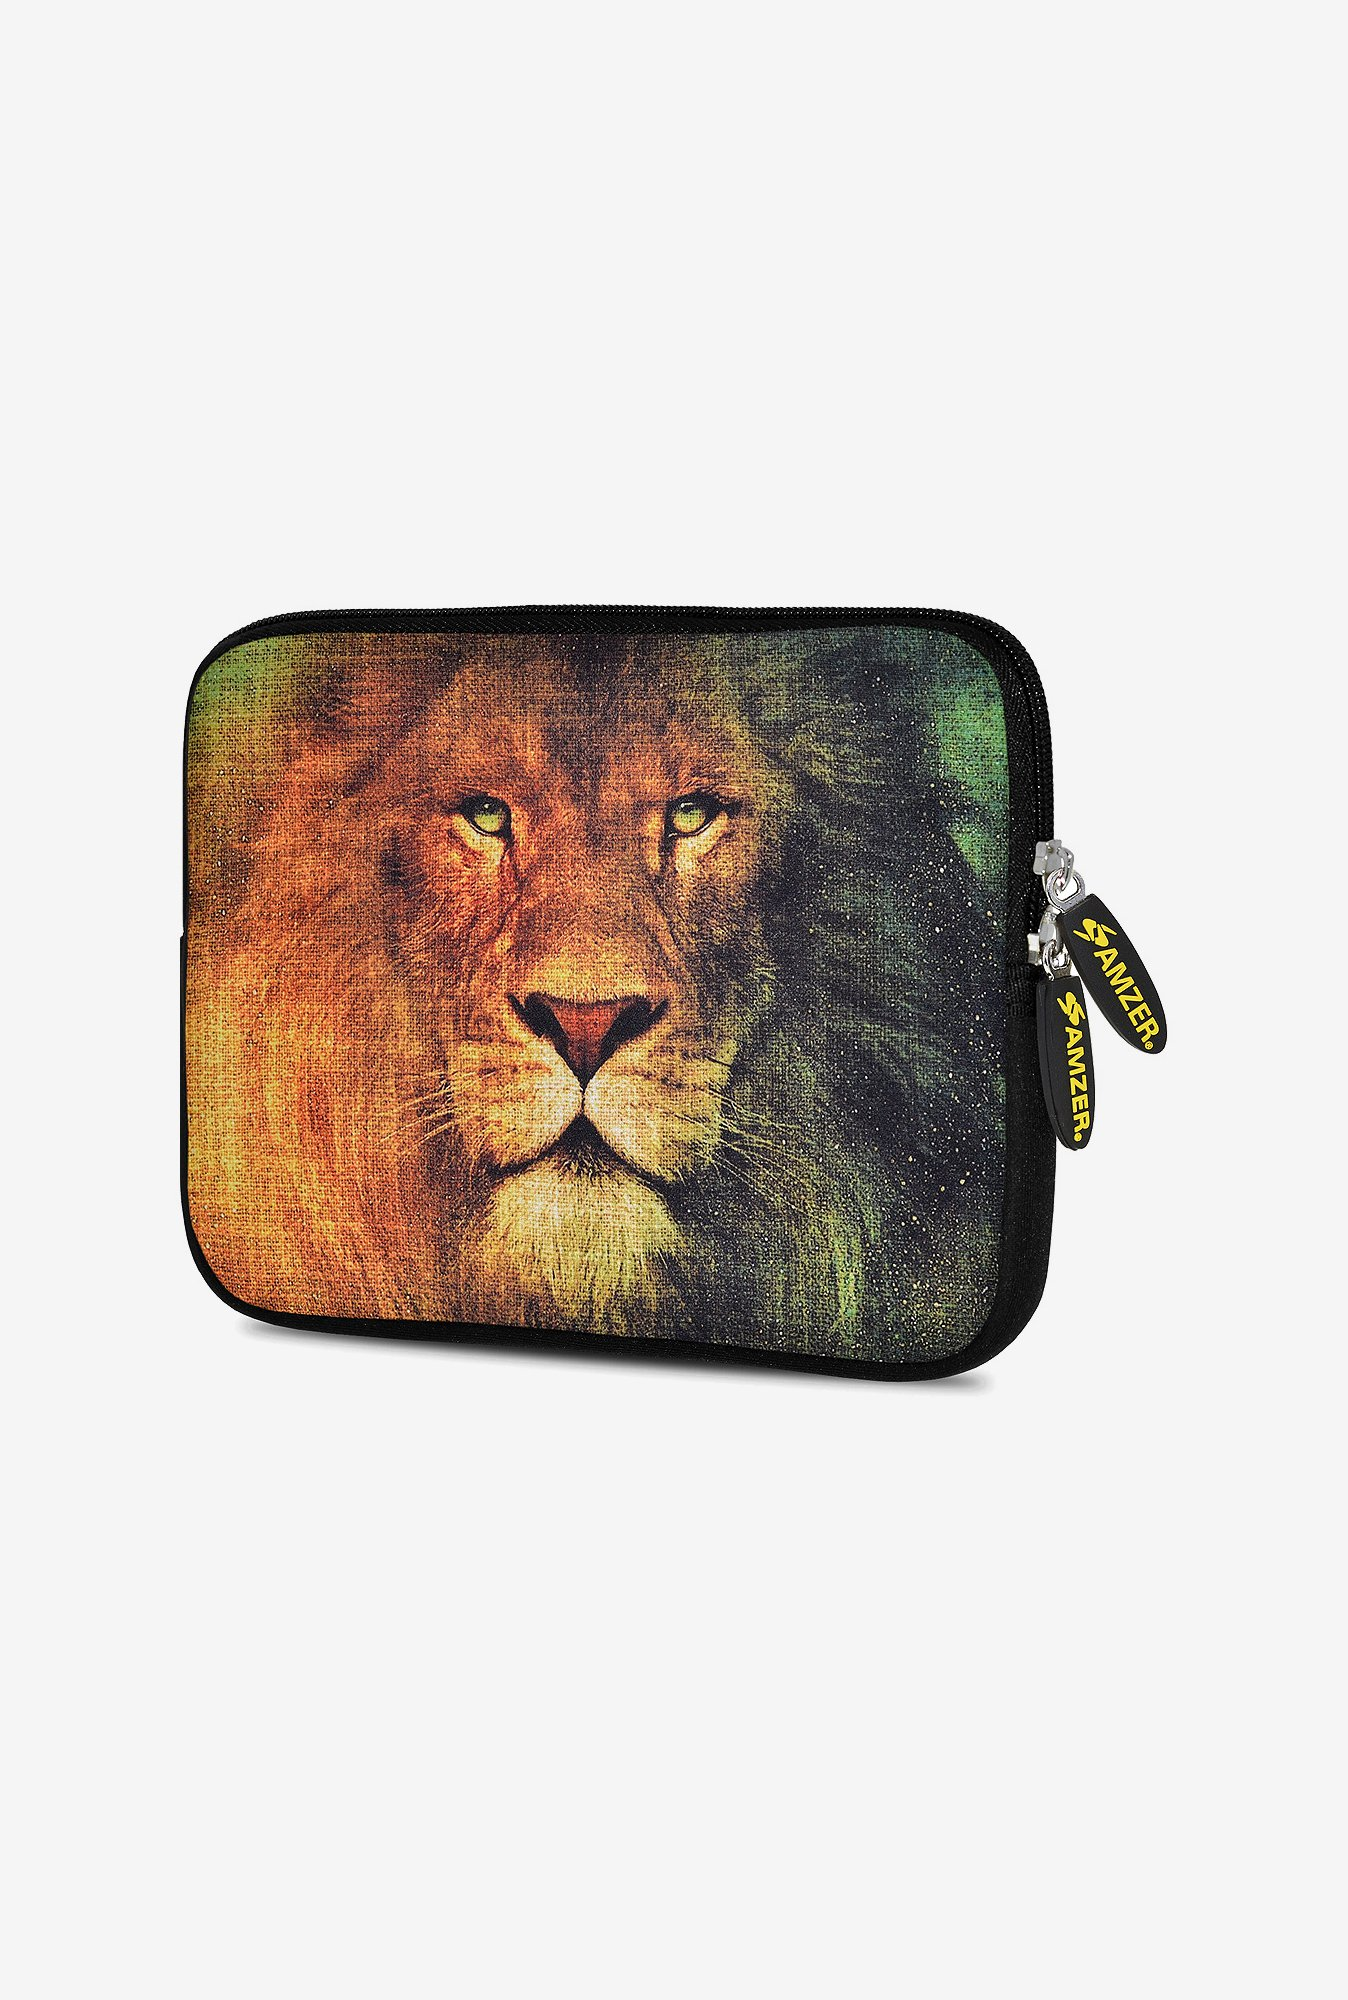 Amzer 7.75 Inch Neoprene Sleeve - King Lion